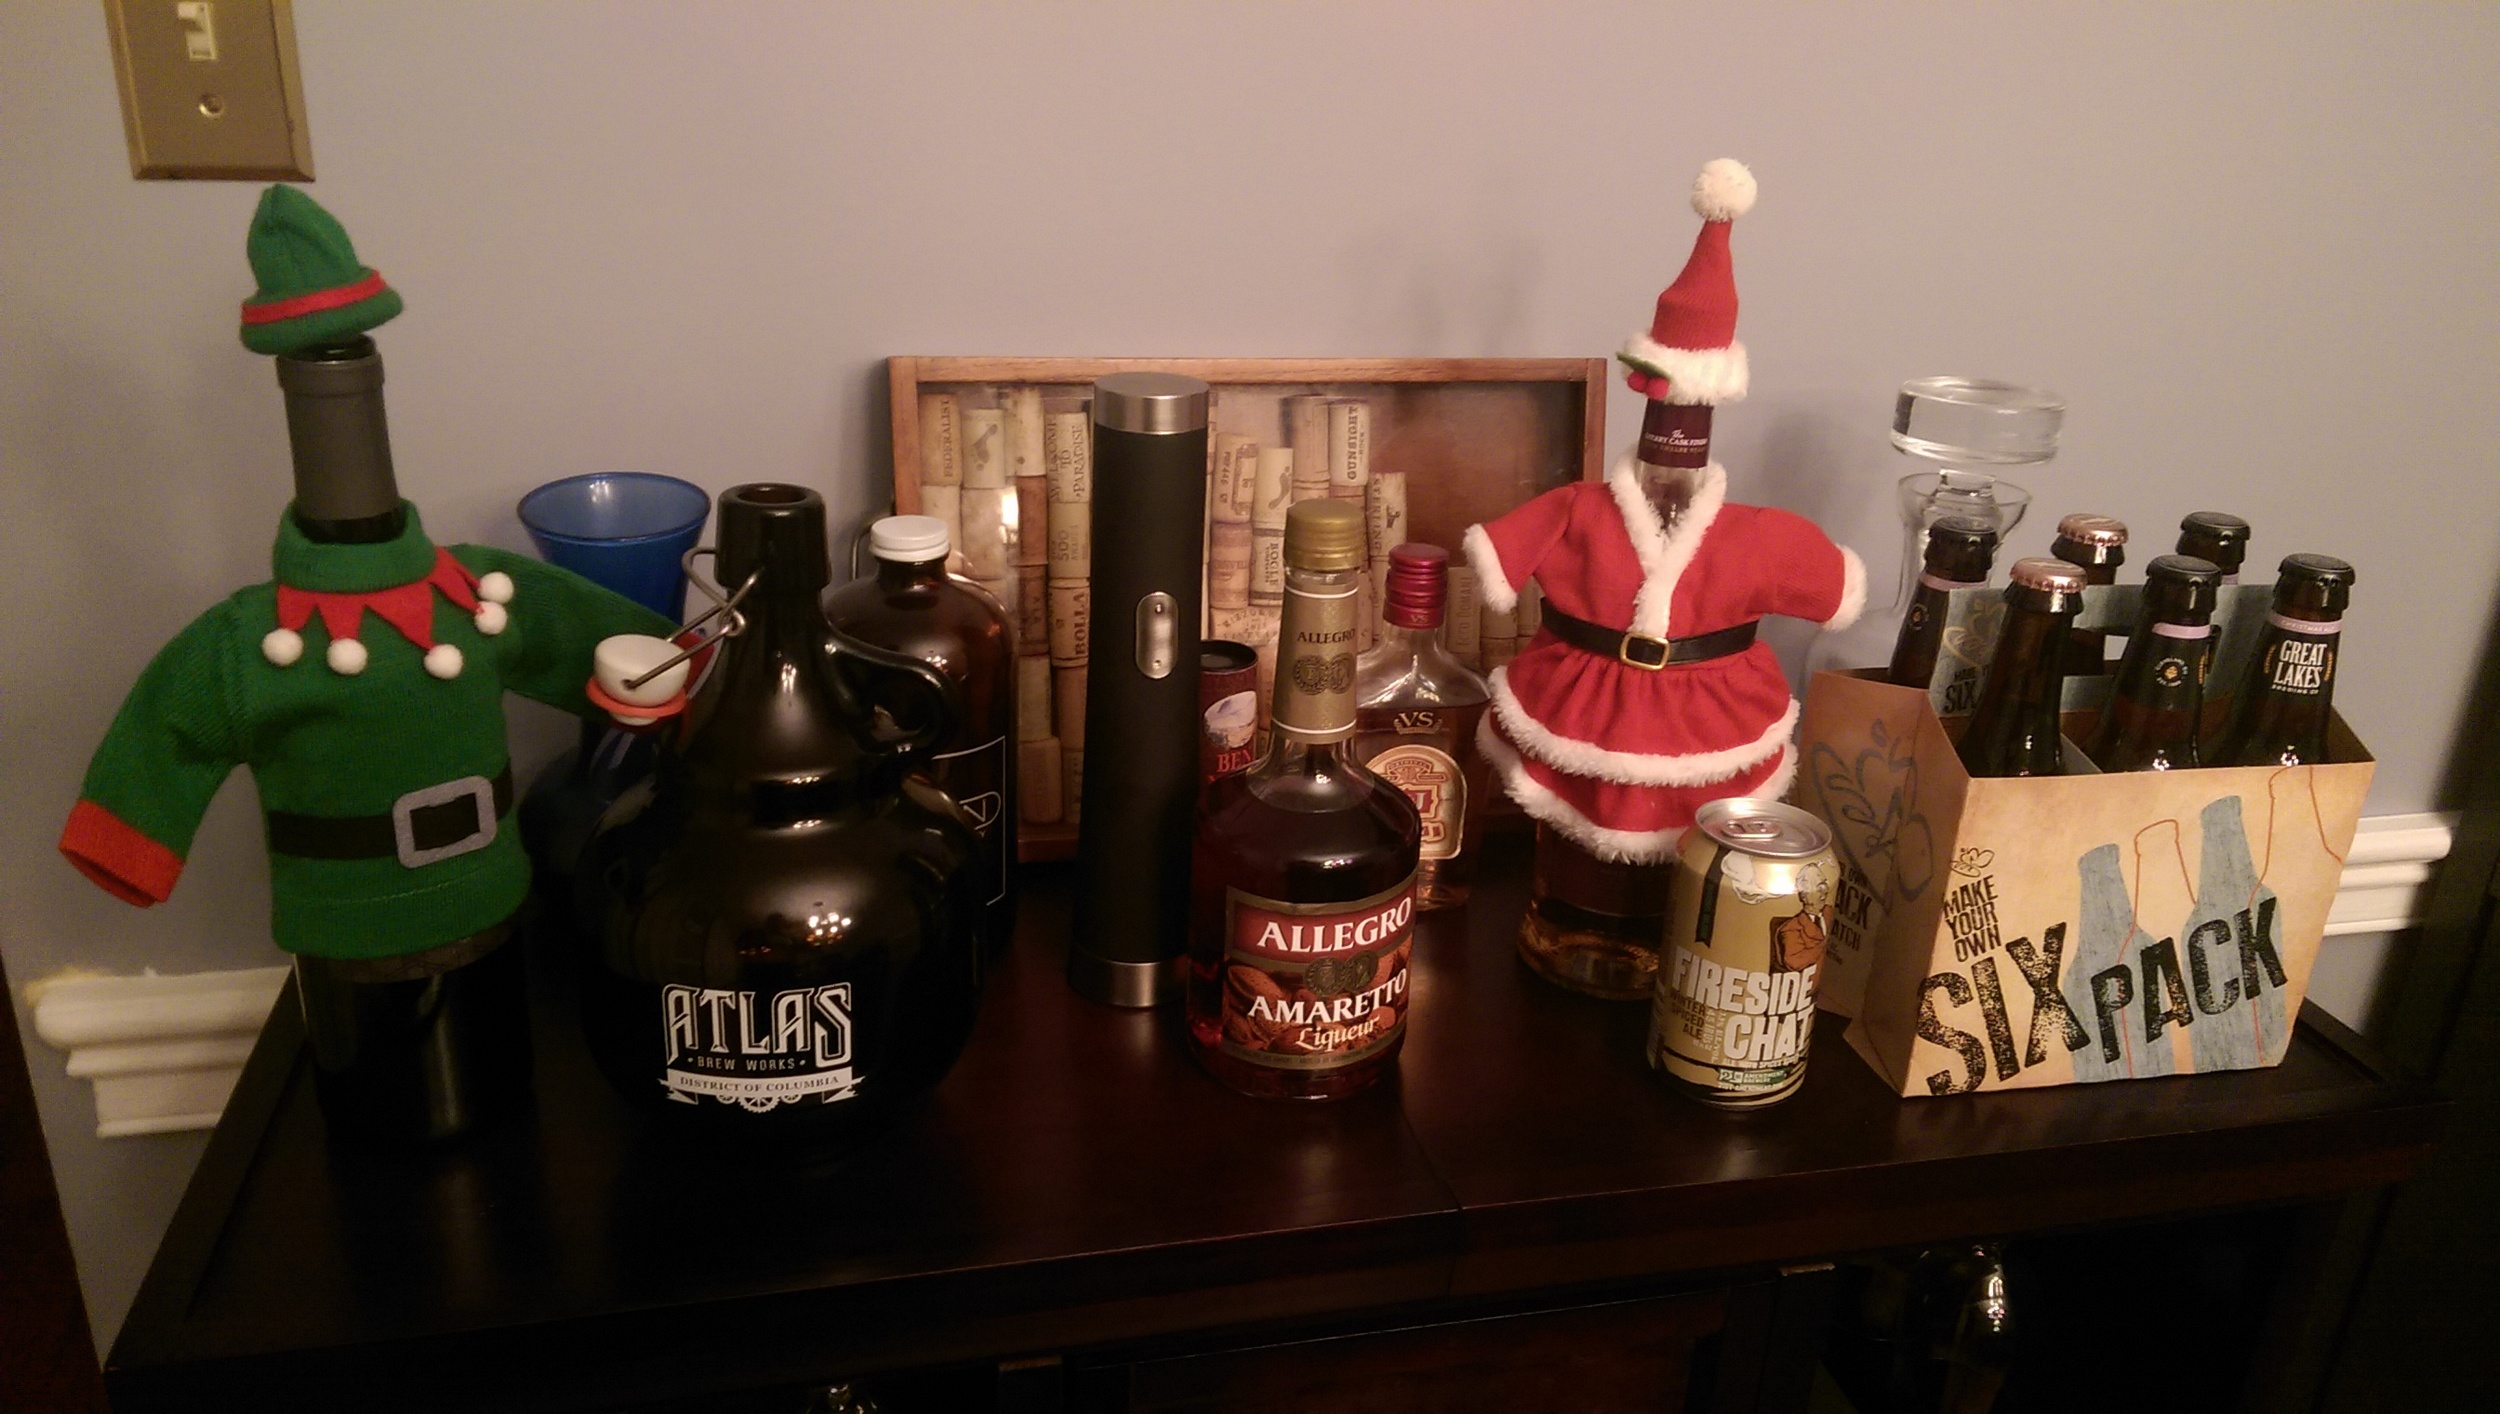 The red wine is dressed up as an elf while my Scotch is pretending to be Santa Clause.